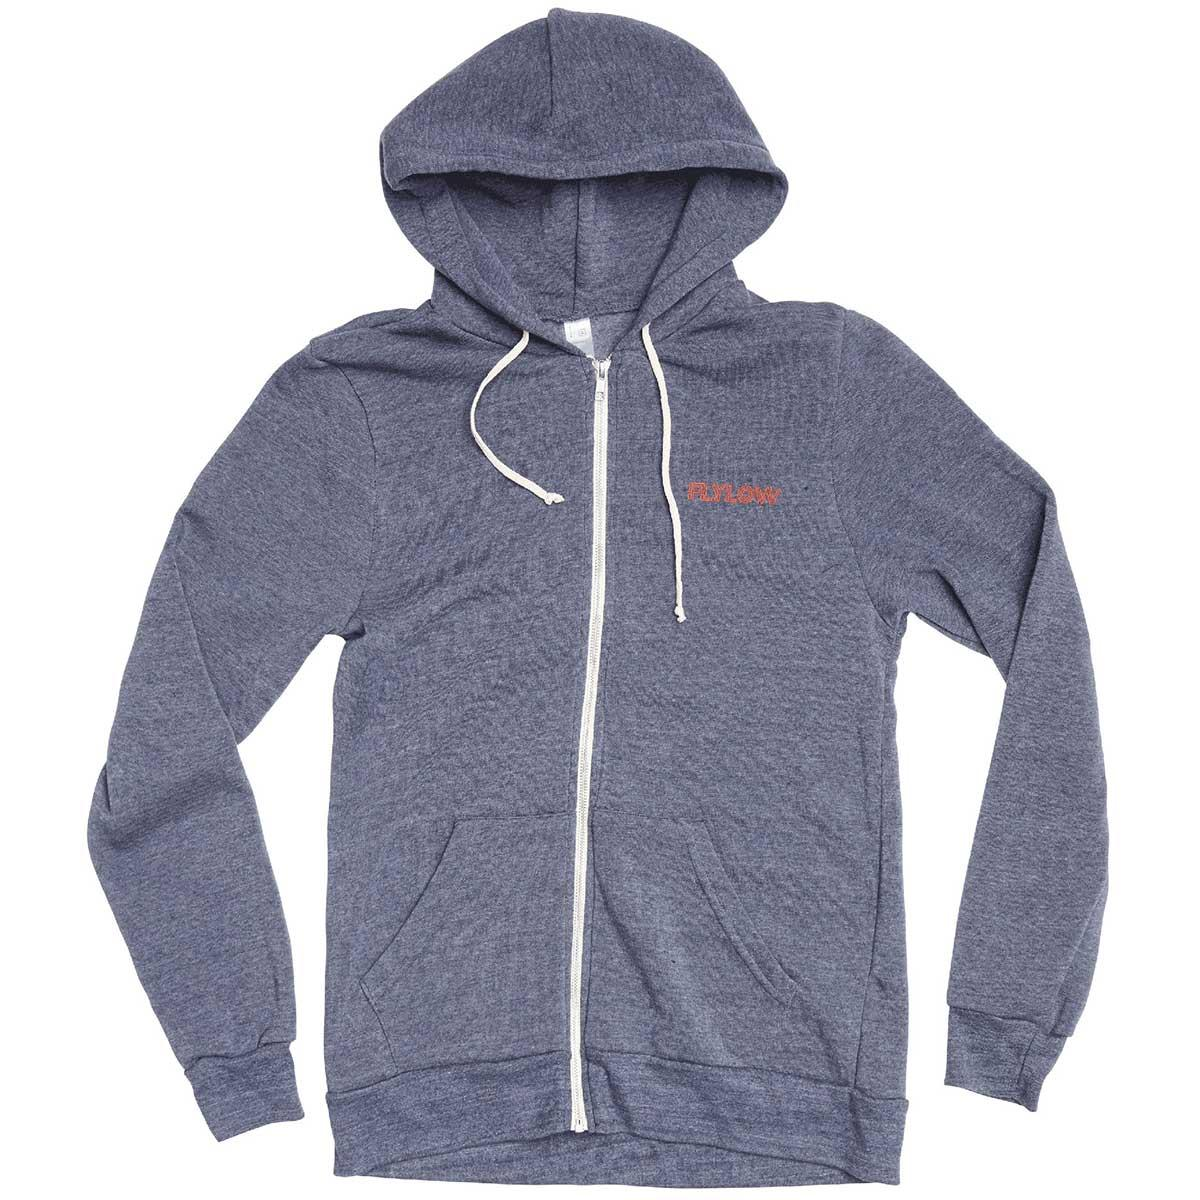 Flylow men's Amigos Hoody in Midnight Heather front view